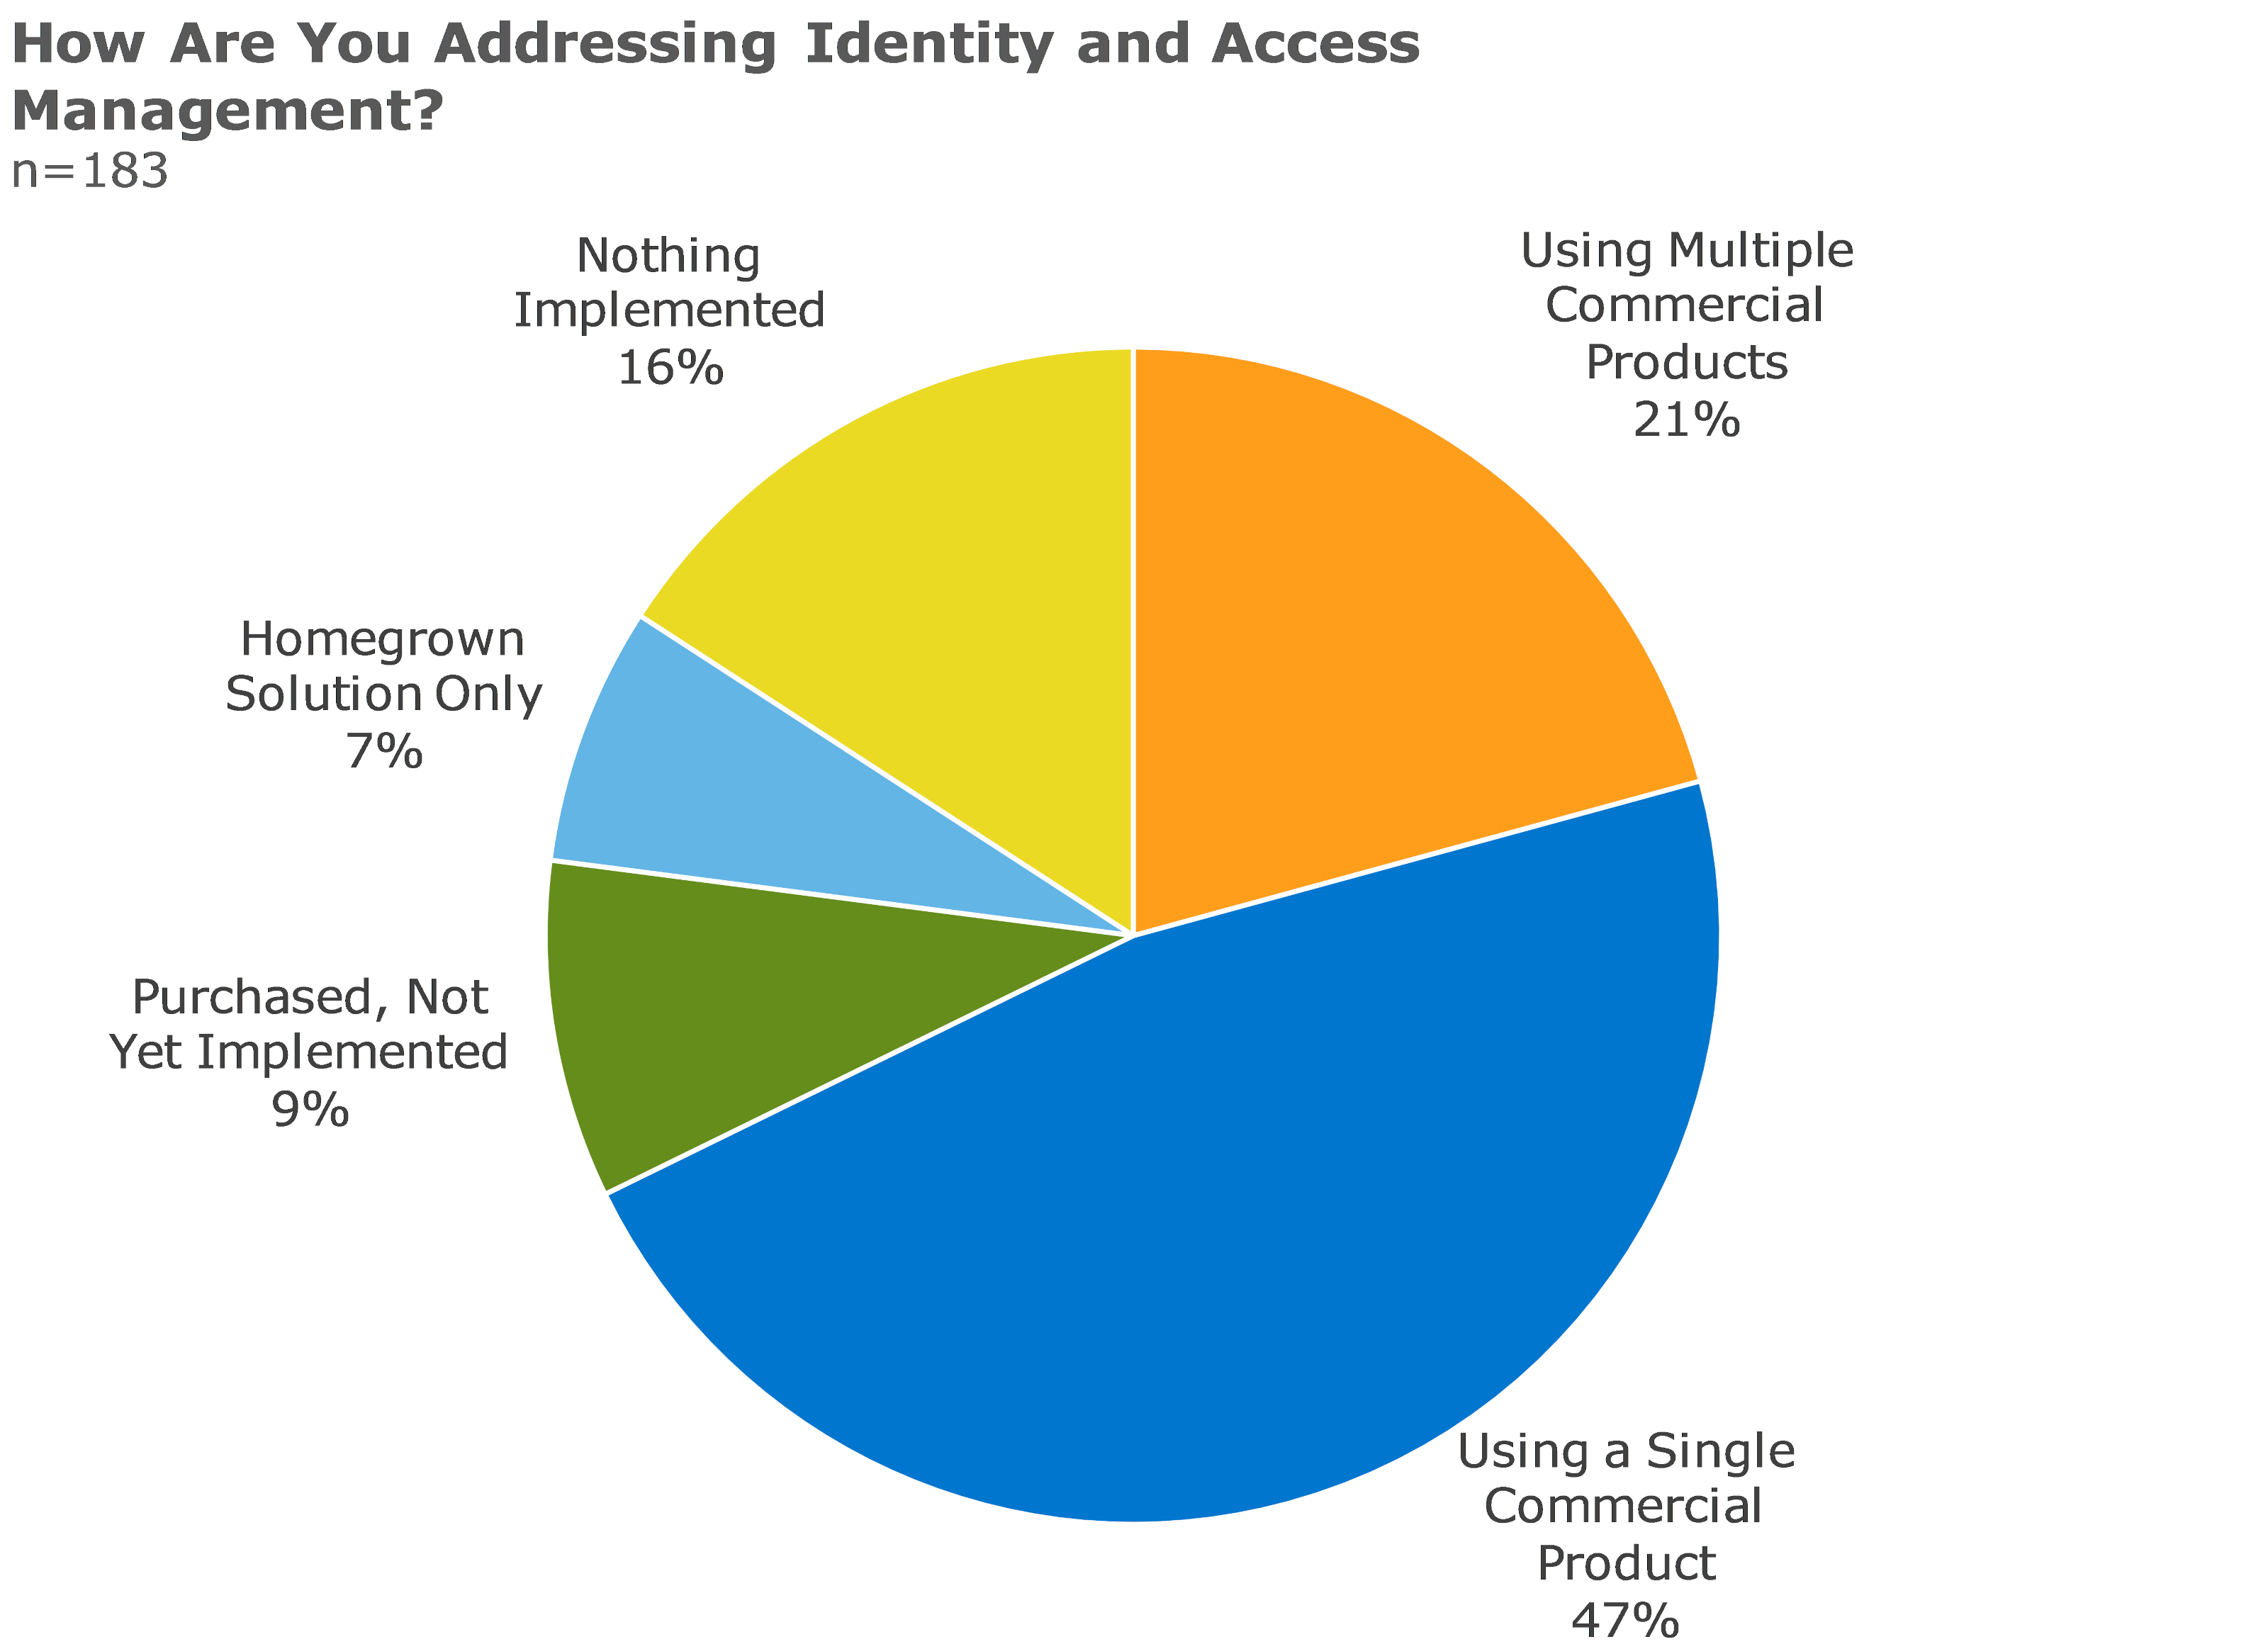 how are you addressing identity and access management